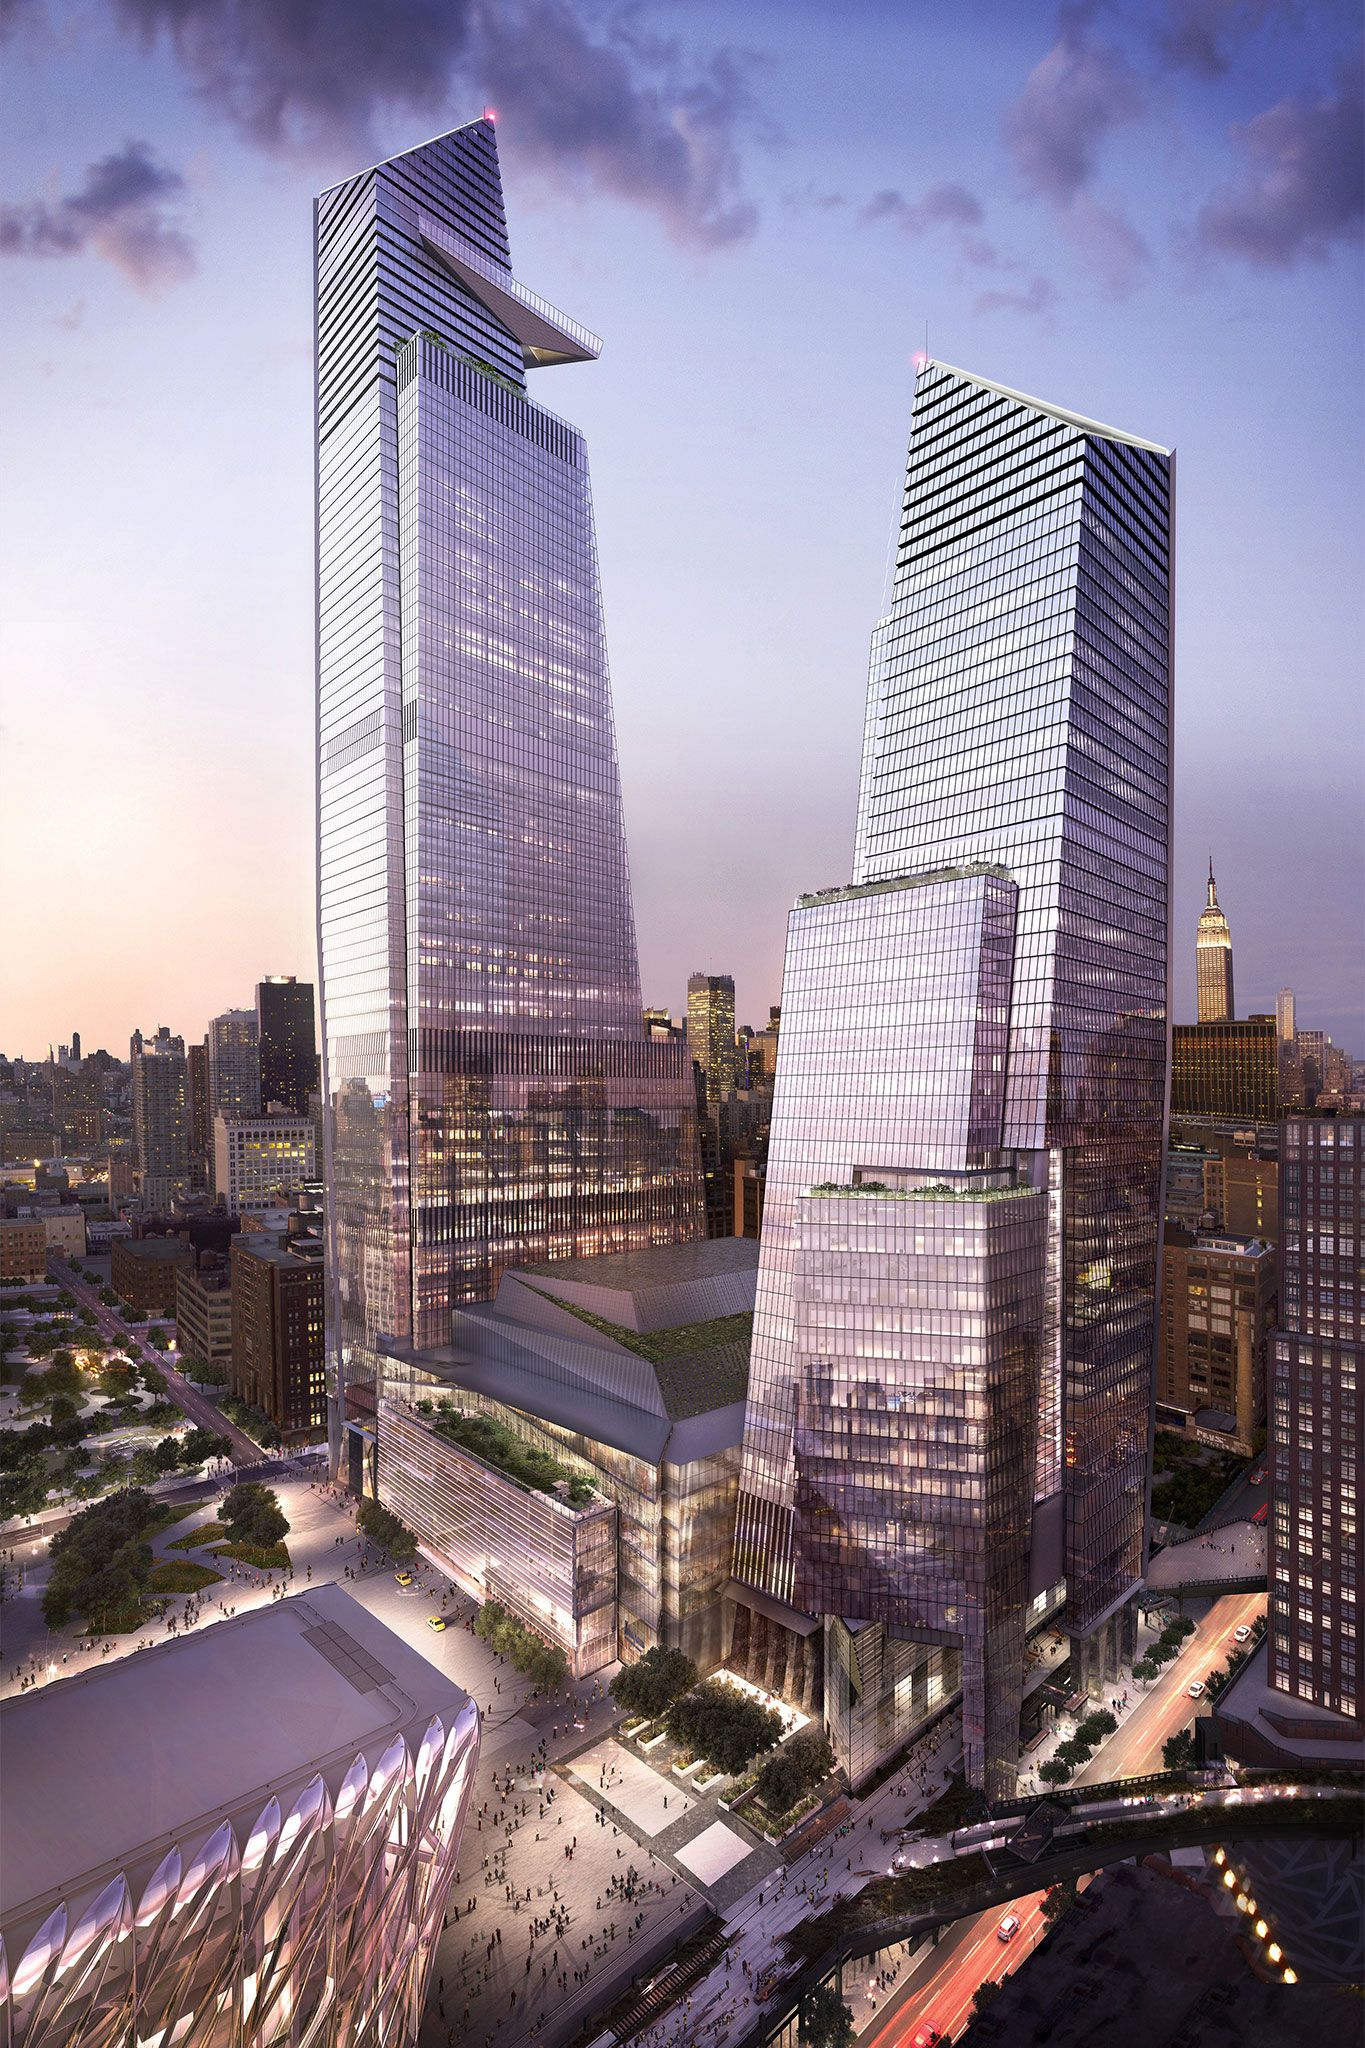 From left: 30 Hudson Yards, the shops and 10 Hudson Yards